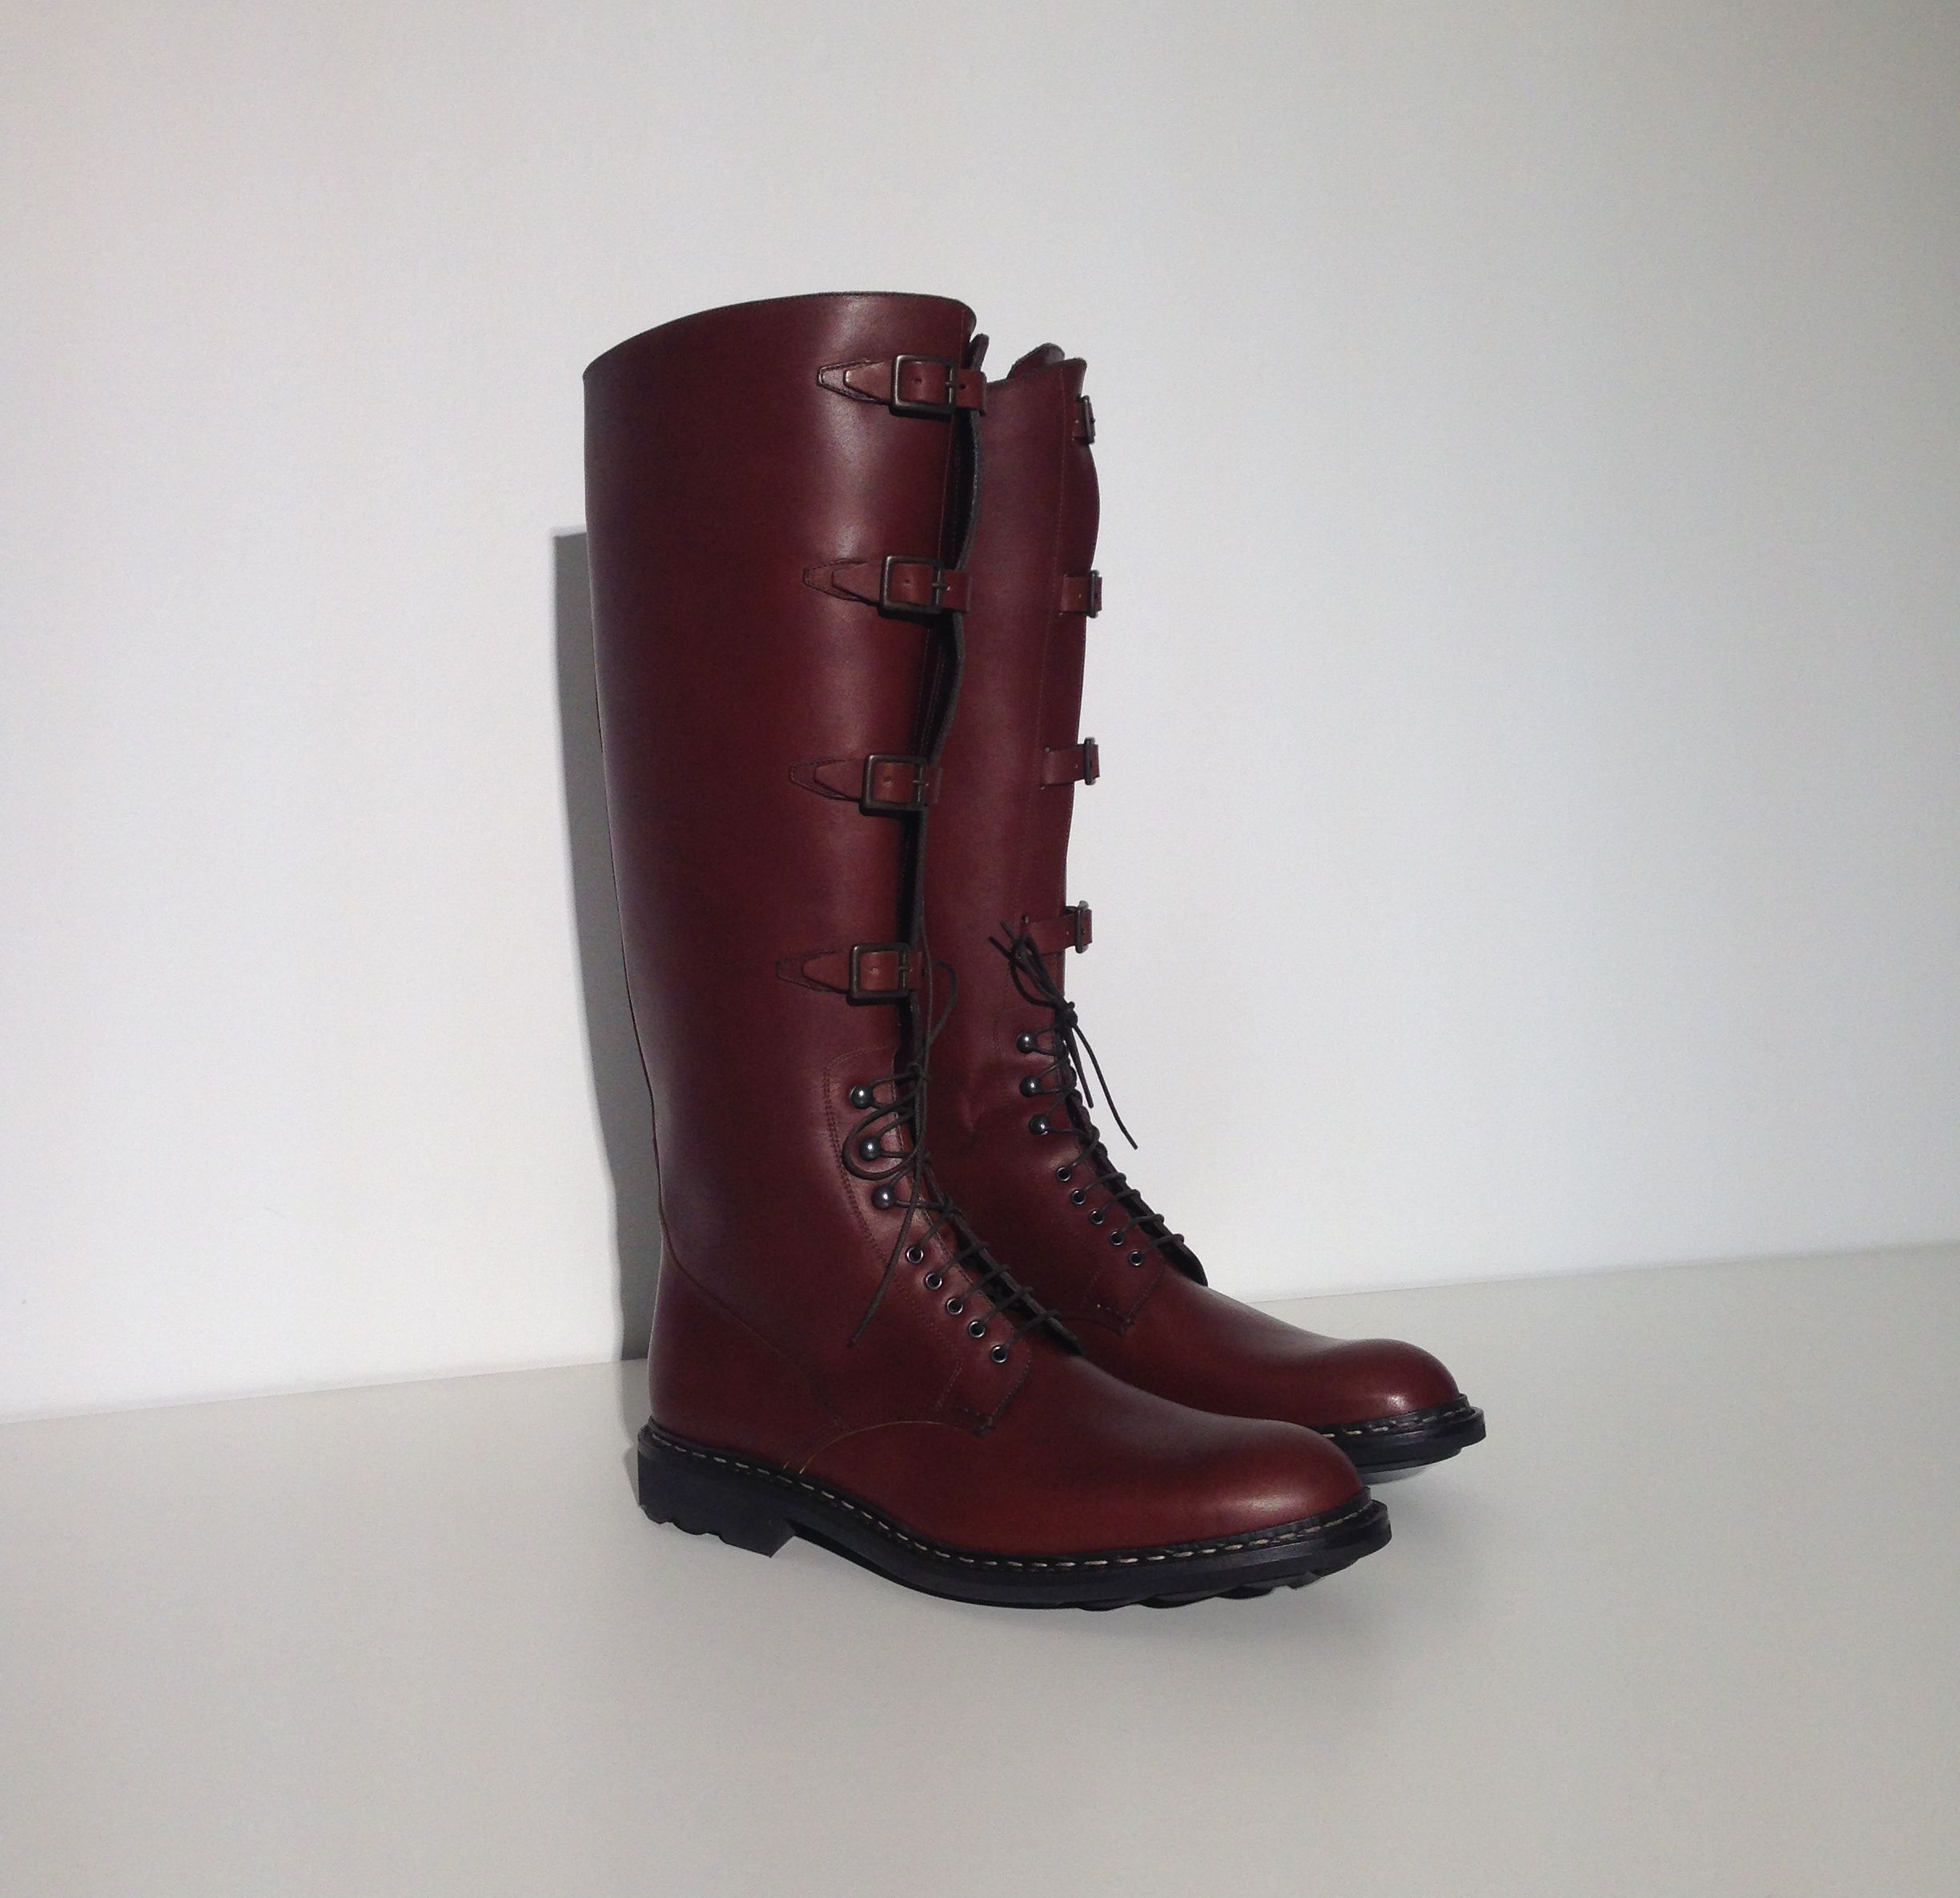 8cfff30e7bde5 Heschung shoes Boots Military - Suportlo Expresso  MadeinFrance  madetooder   boots  AteliersHeschung